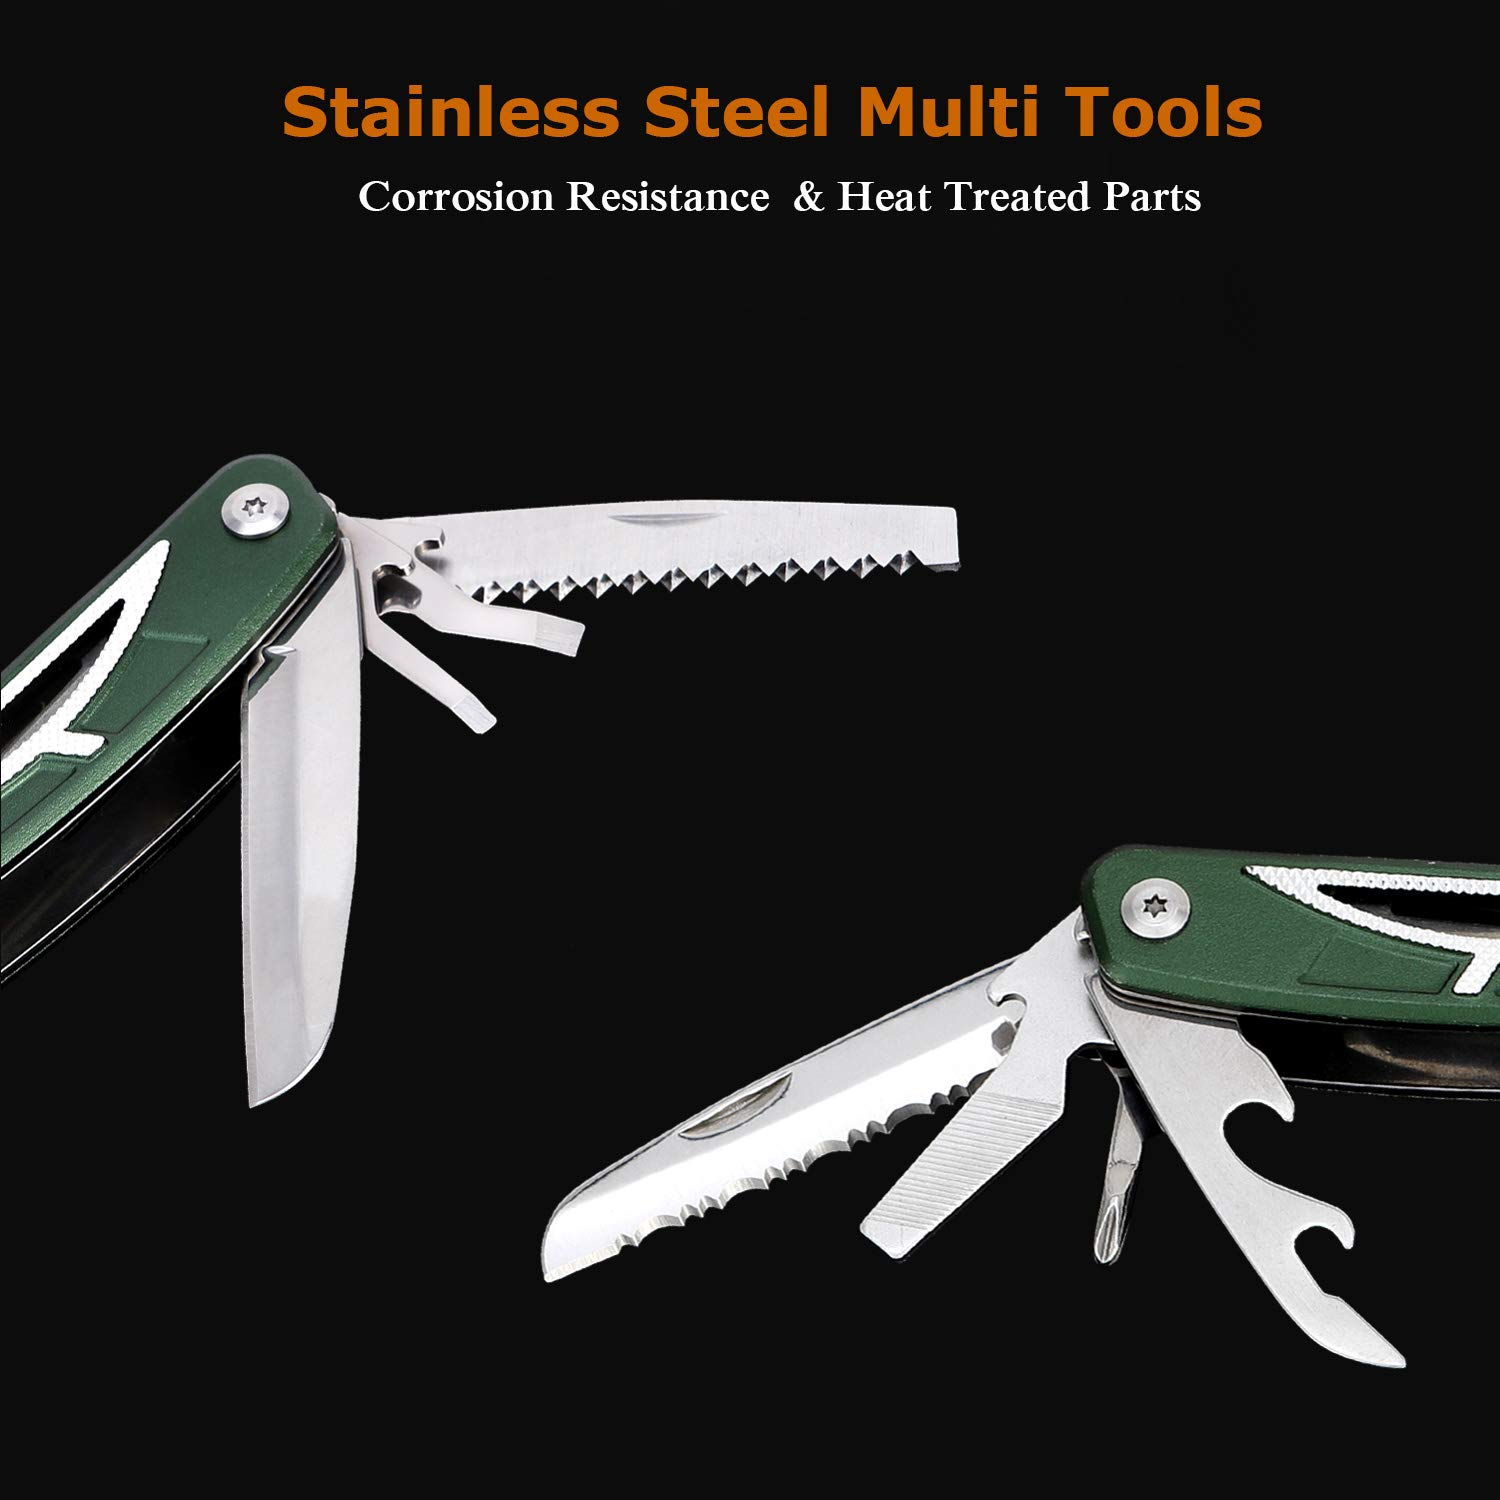 Multitool Knife with Safety Lock, Portable Multifunctional Survival Tools Multipurpose Pocket Pliers with Screwdriver, Folding Saw, Serrated Knife, Wire Cutter for Camping, Hunting, Fishing